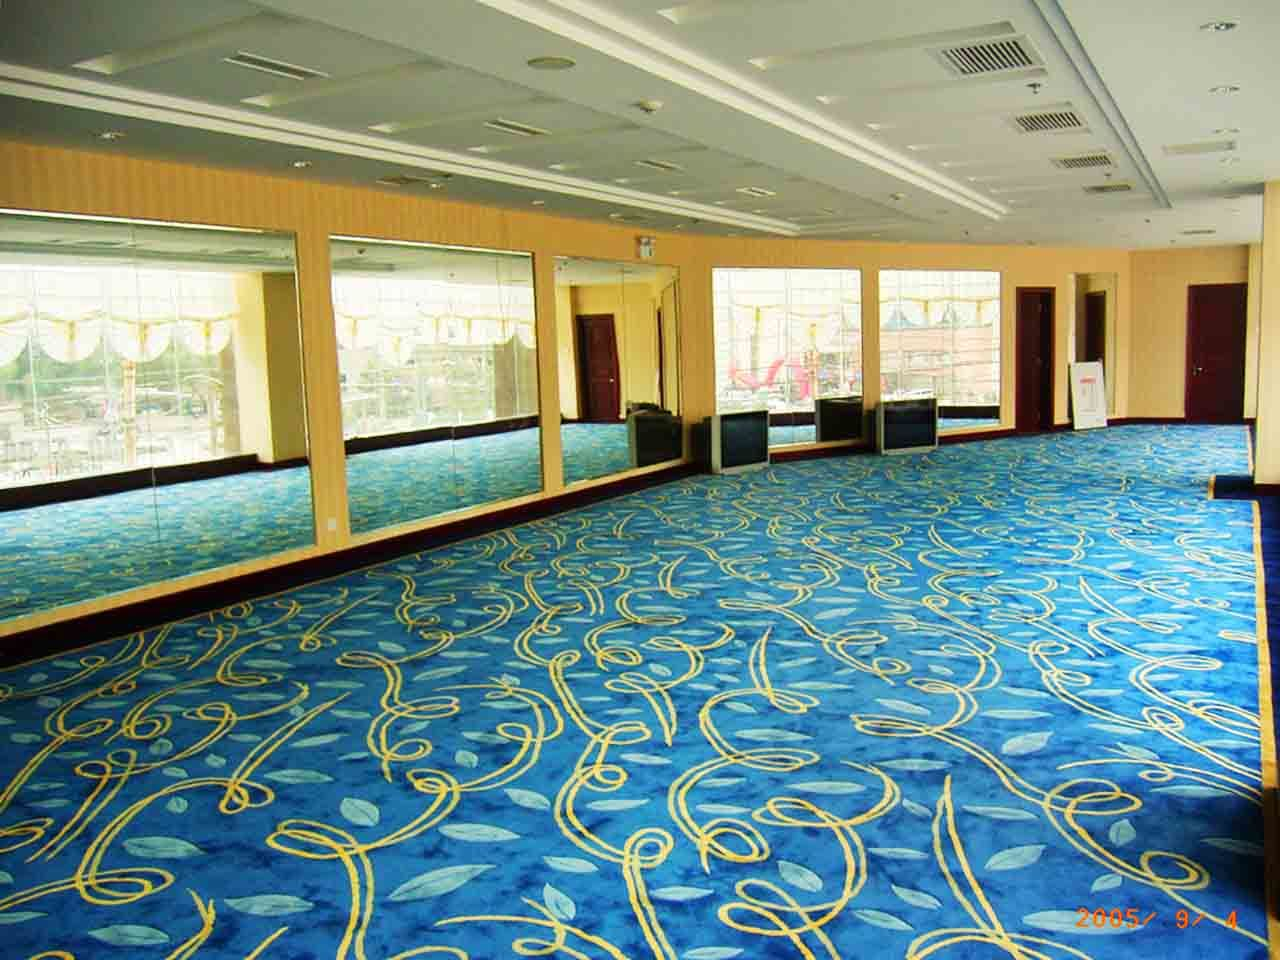 Wall to wall bathroom carpet 5 x 8 - Royale 5 X 8 Wall To Bathroom Carpet By Mohawk Best 2017